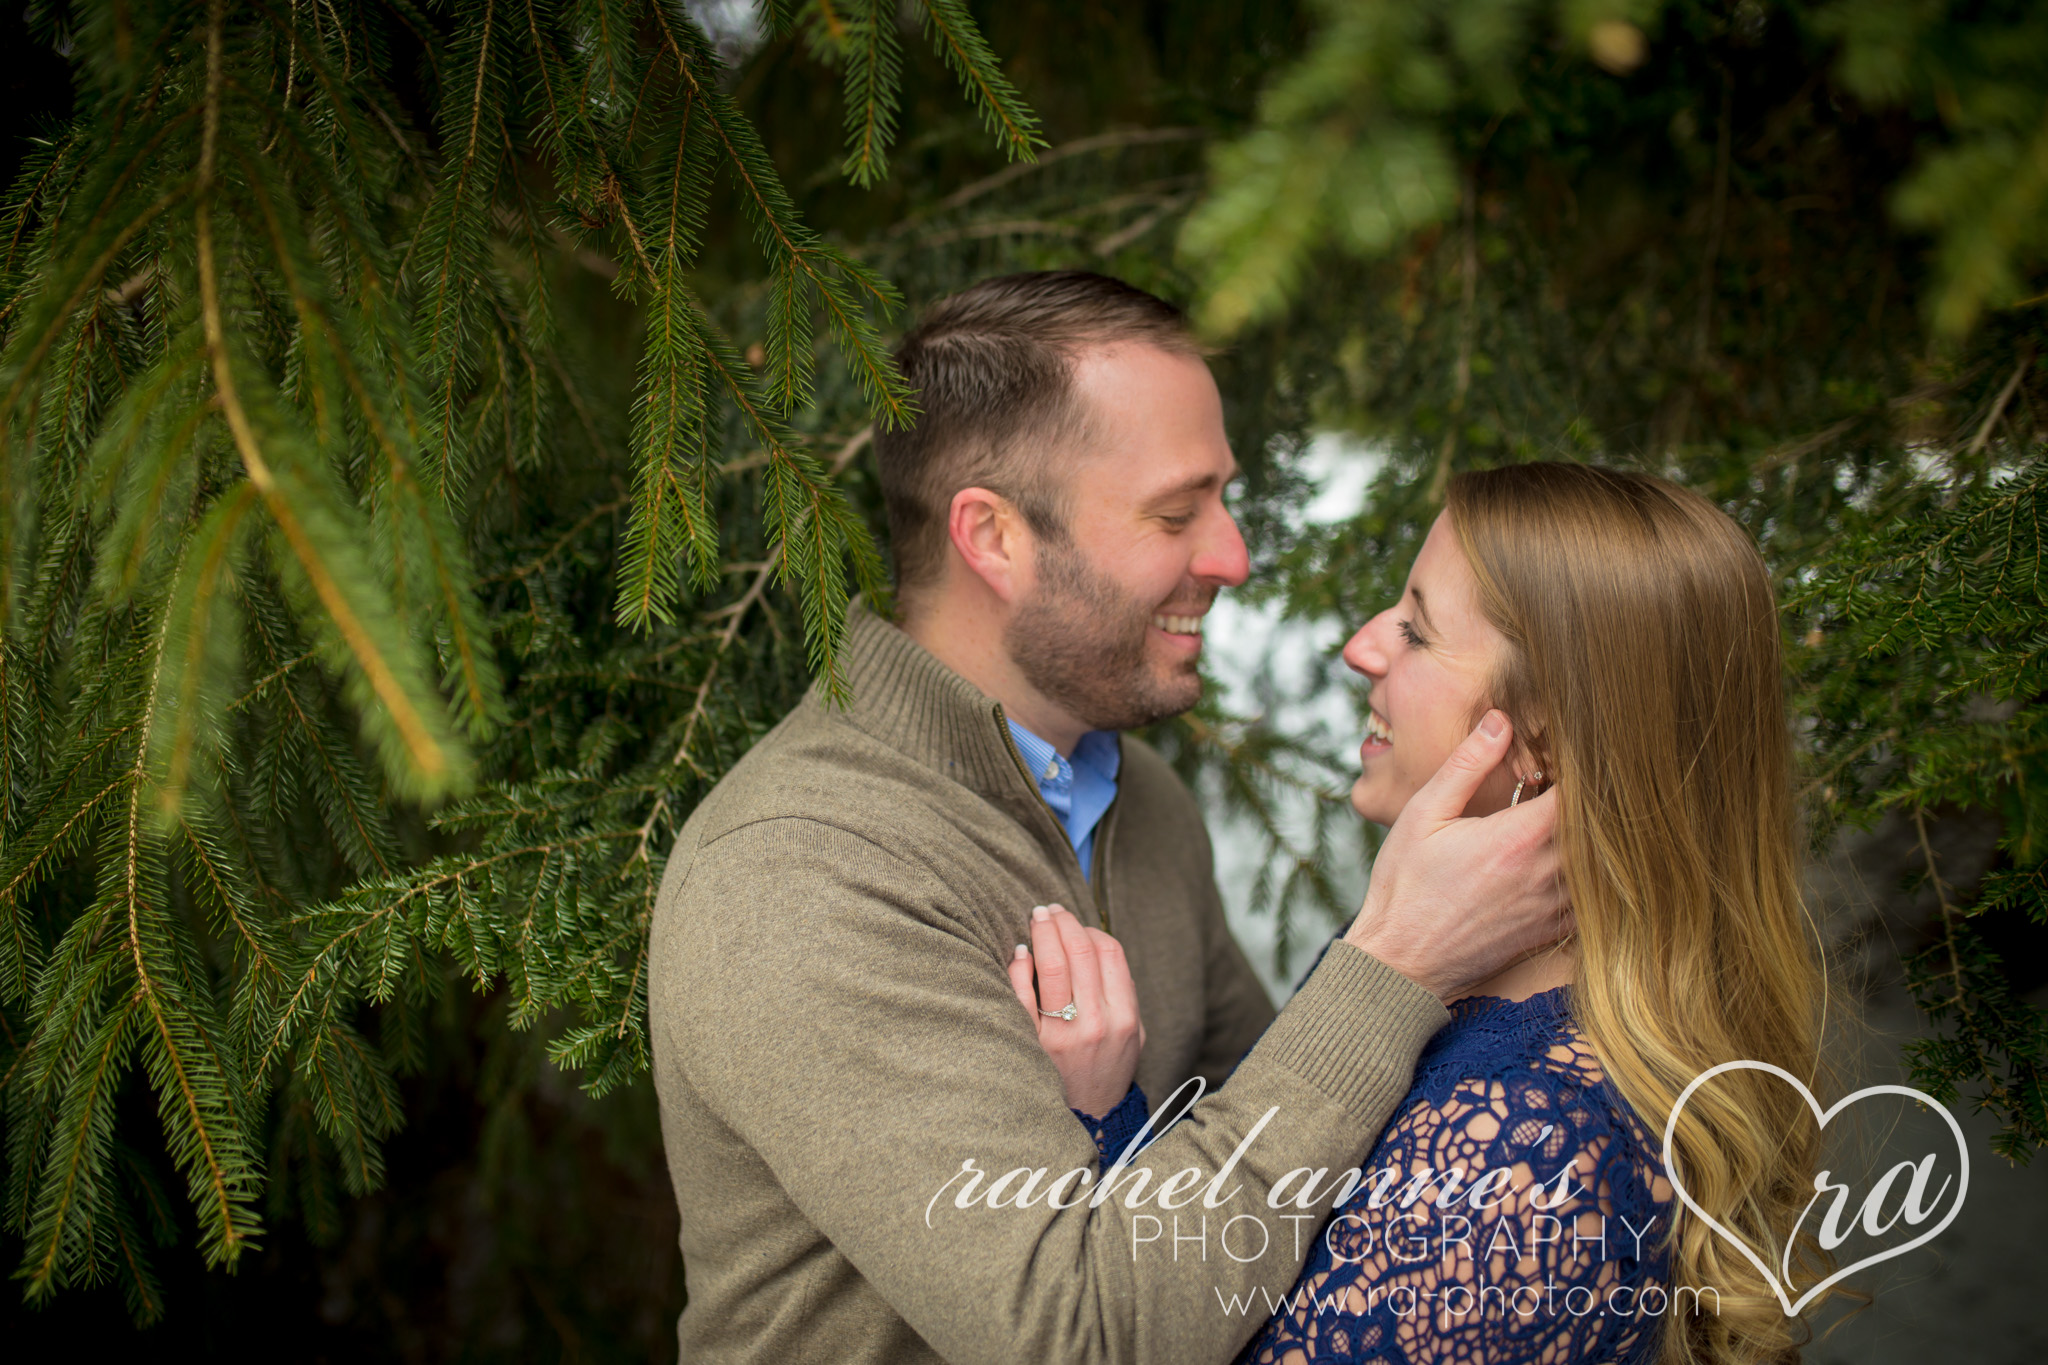 078-JKM-DUBOIS-PA-ENGAGEMENT-PHOTOGRAPHY.jpg